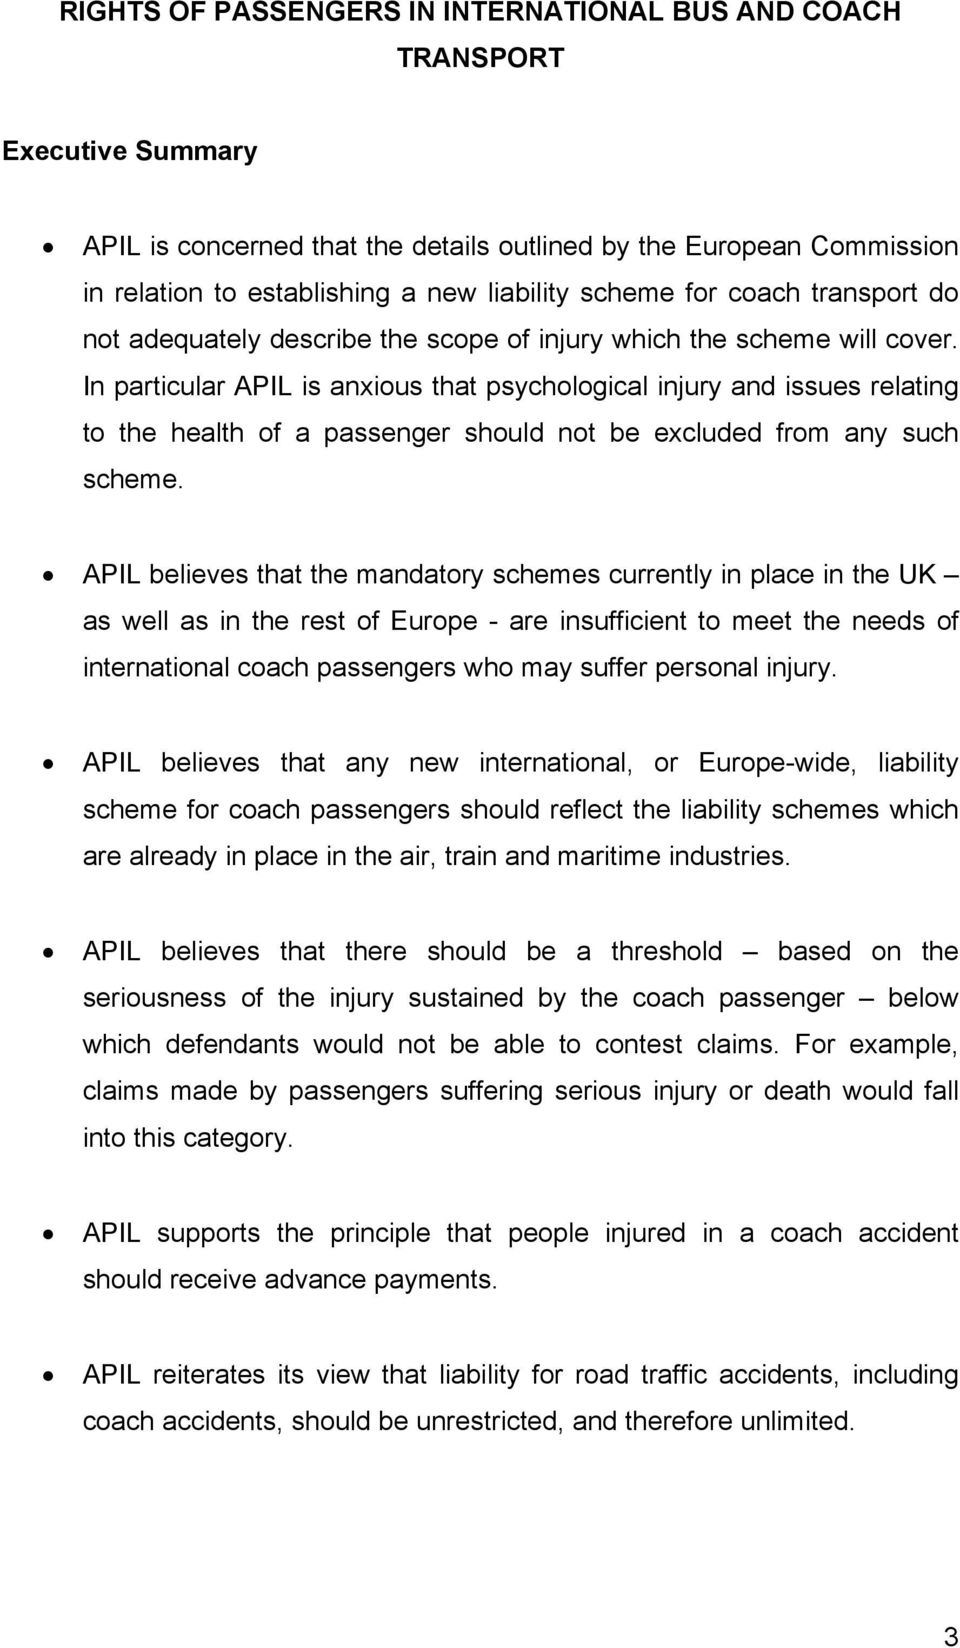 In particular APIL is anxious that psychological injury and issues relating to the health of a passenger should not be excluded from any such scheme.